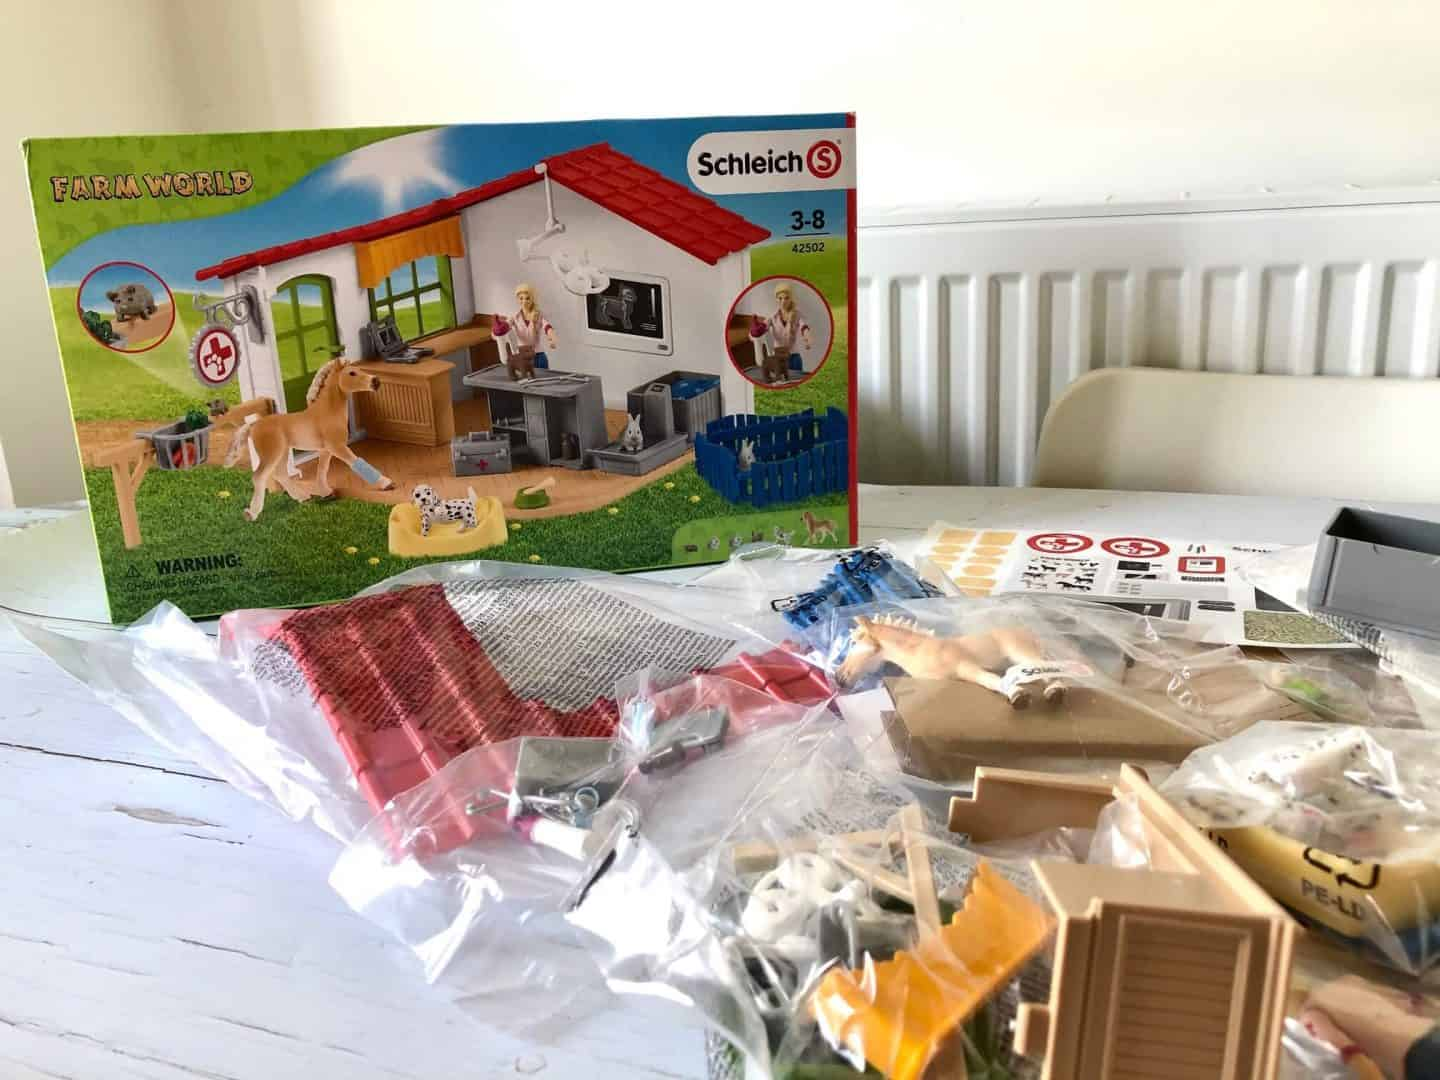 All the pieces of the Schleich Farm World Veterinarian playset